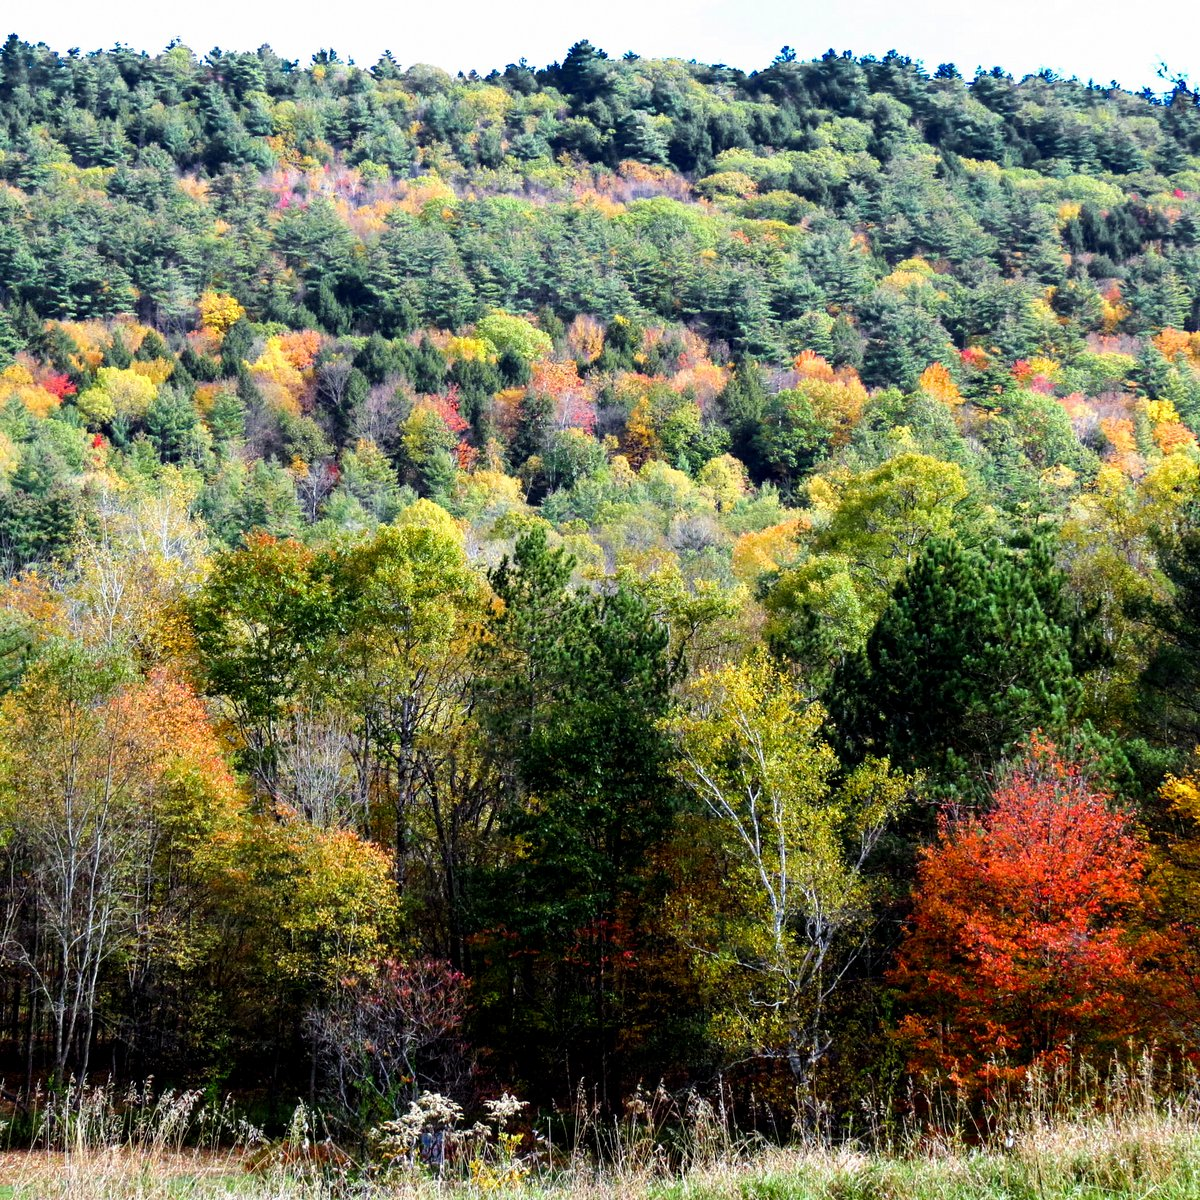 More Fall Foliage | New Hampshire Garden Solutions